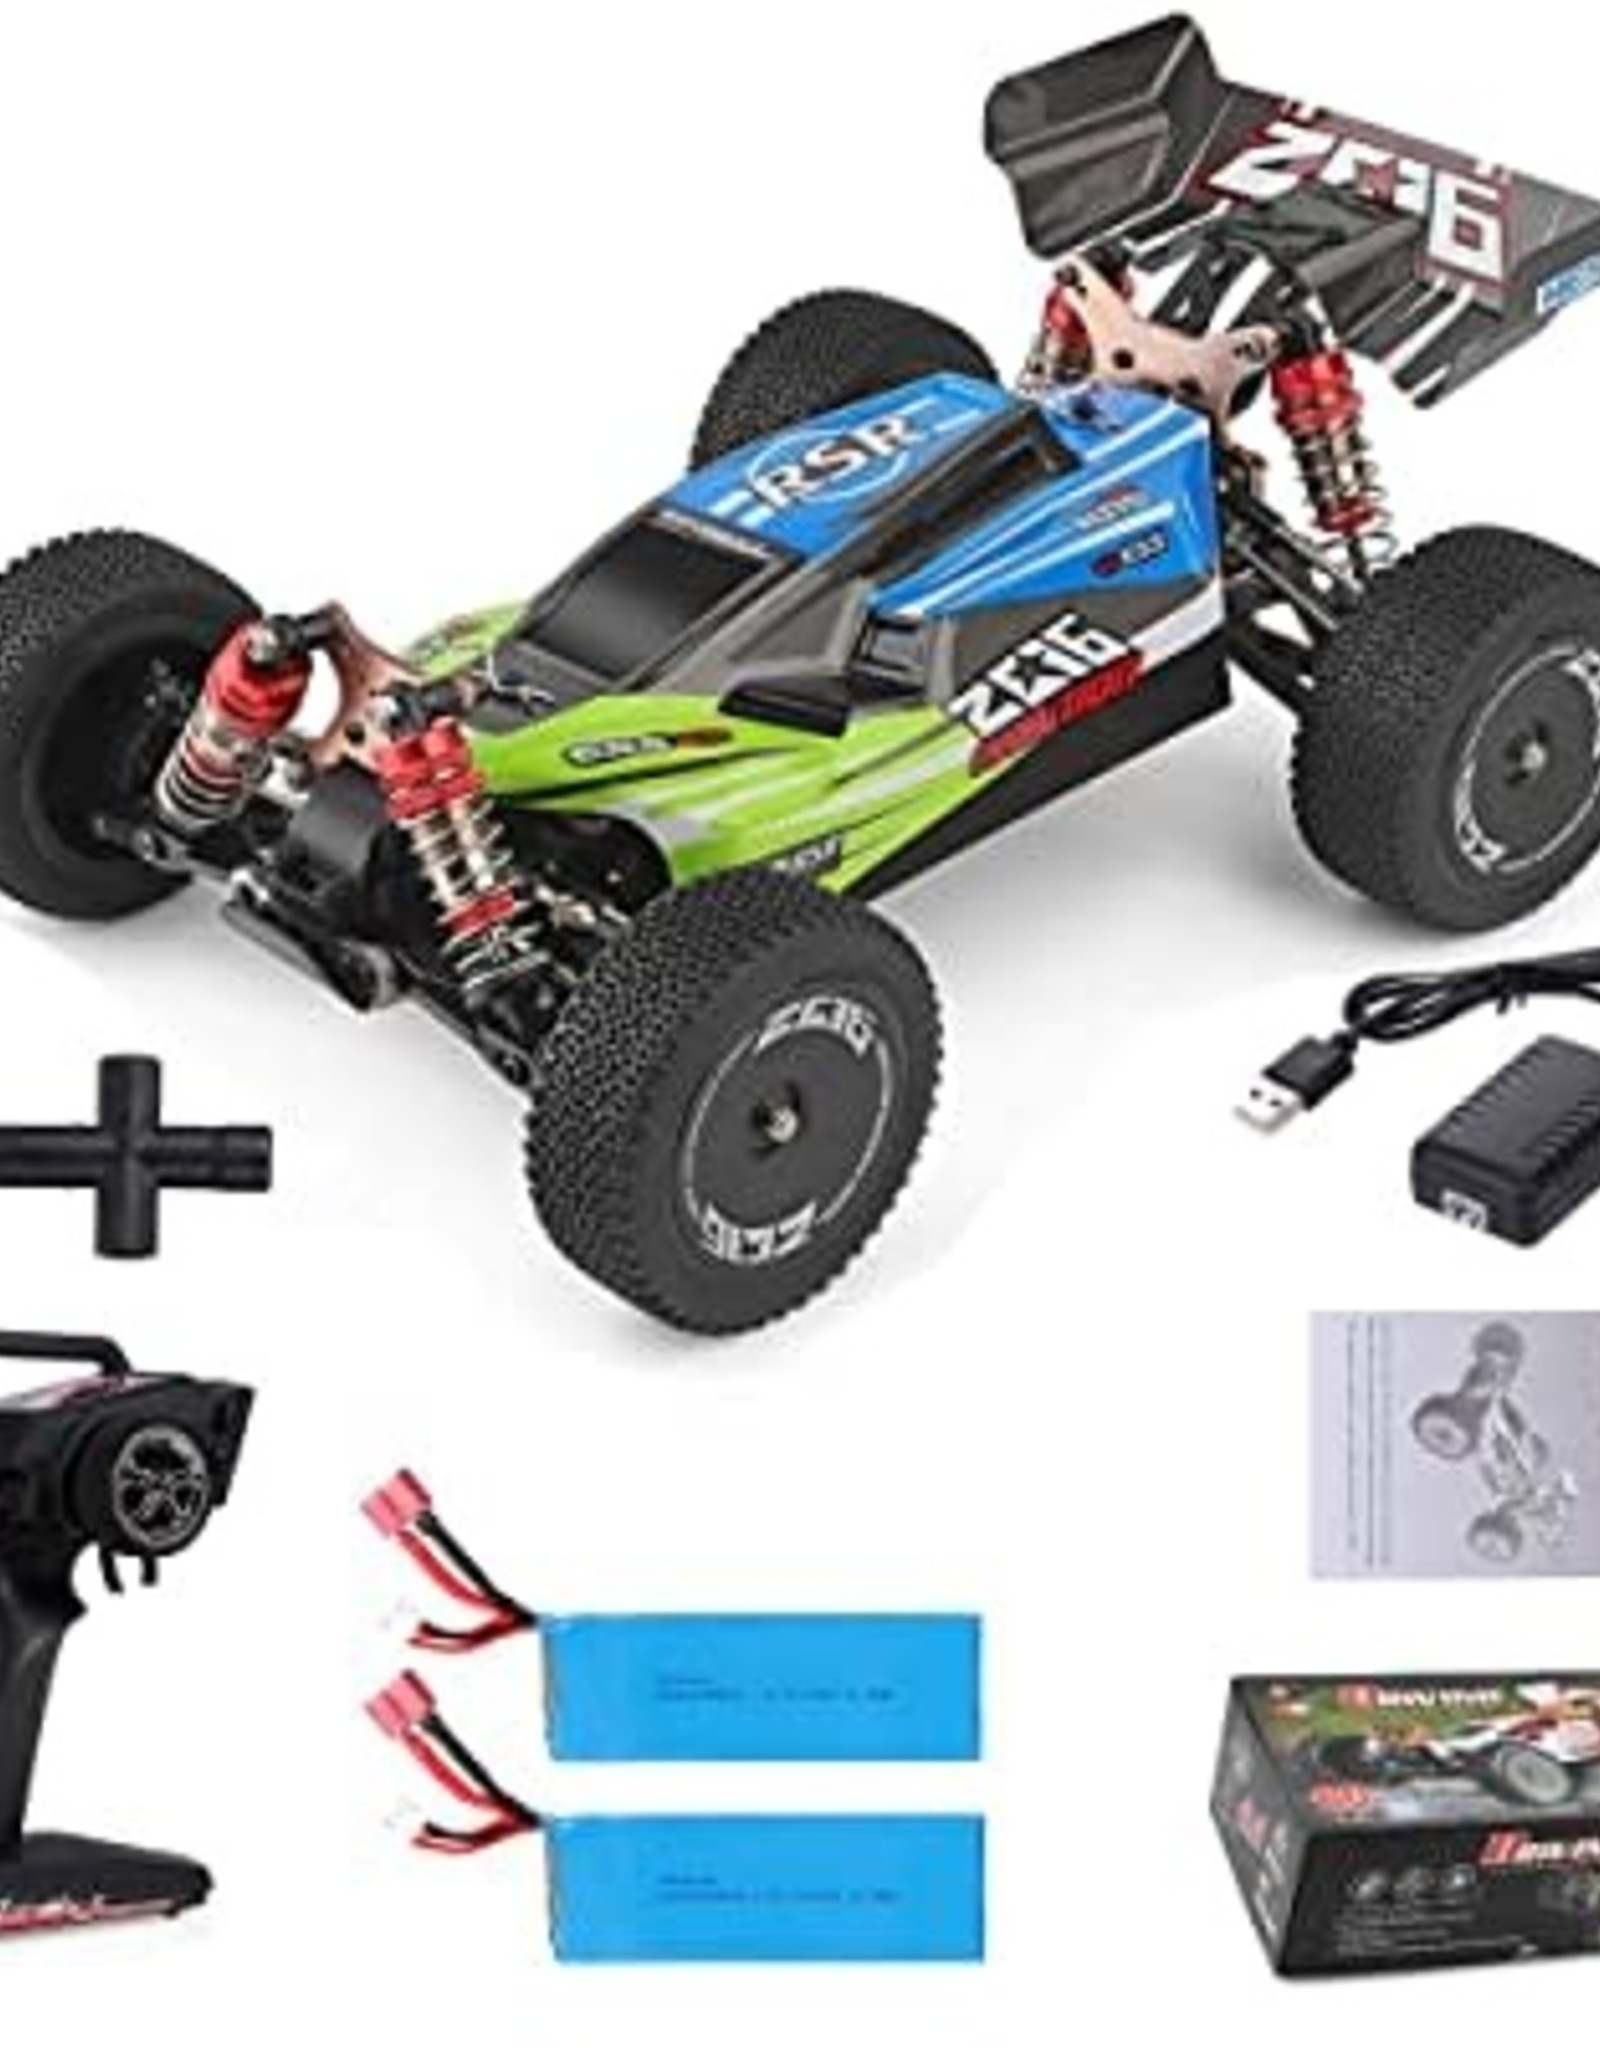 WL TOYS Wltoys 144001 1/14 2.4G Racing RC Car 4WD High Speed Remote Control